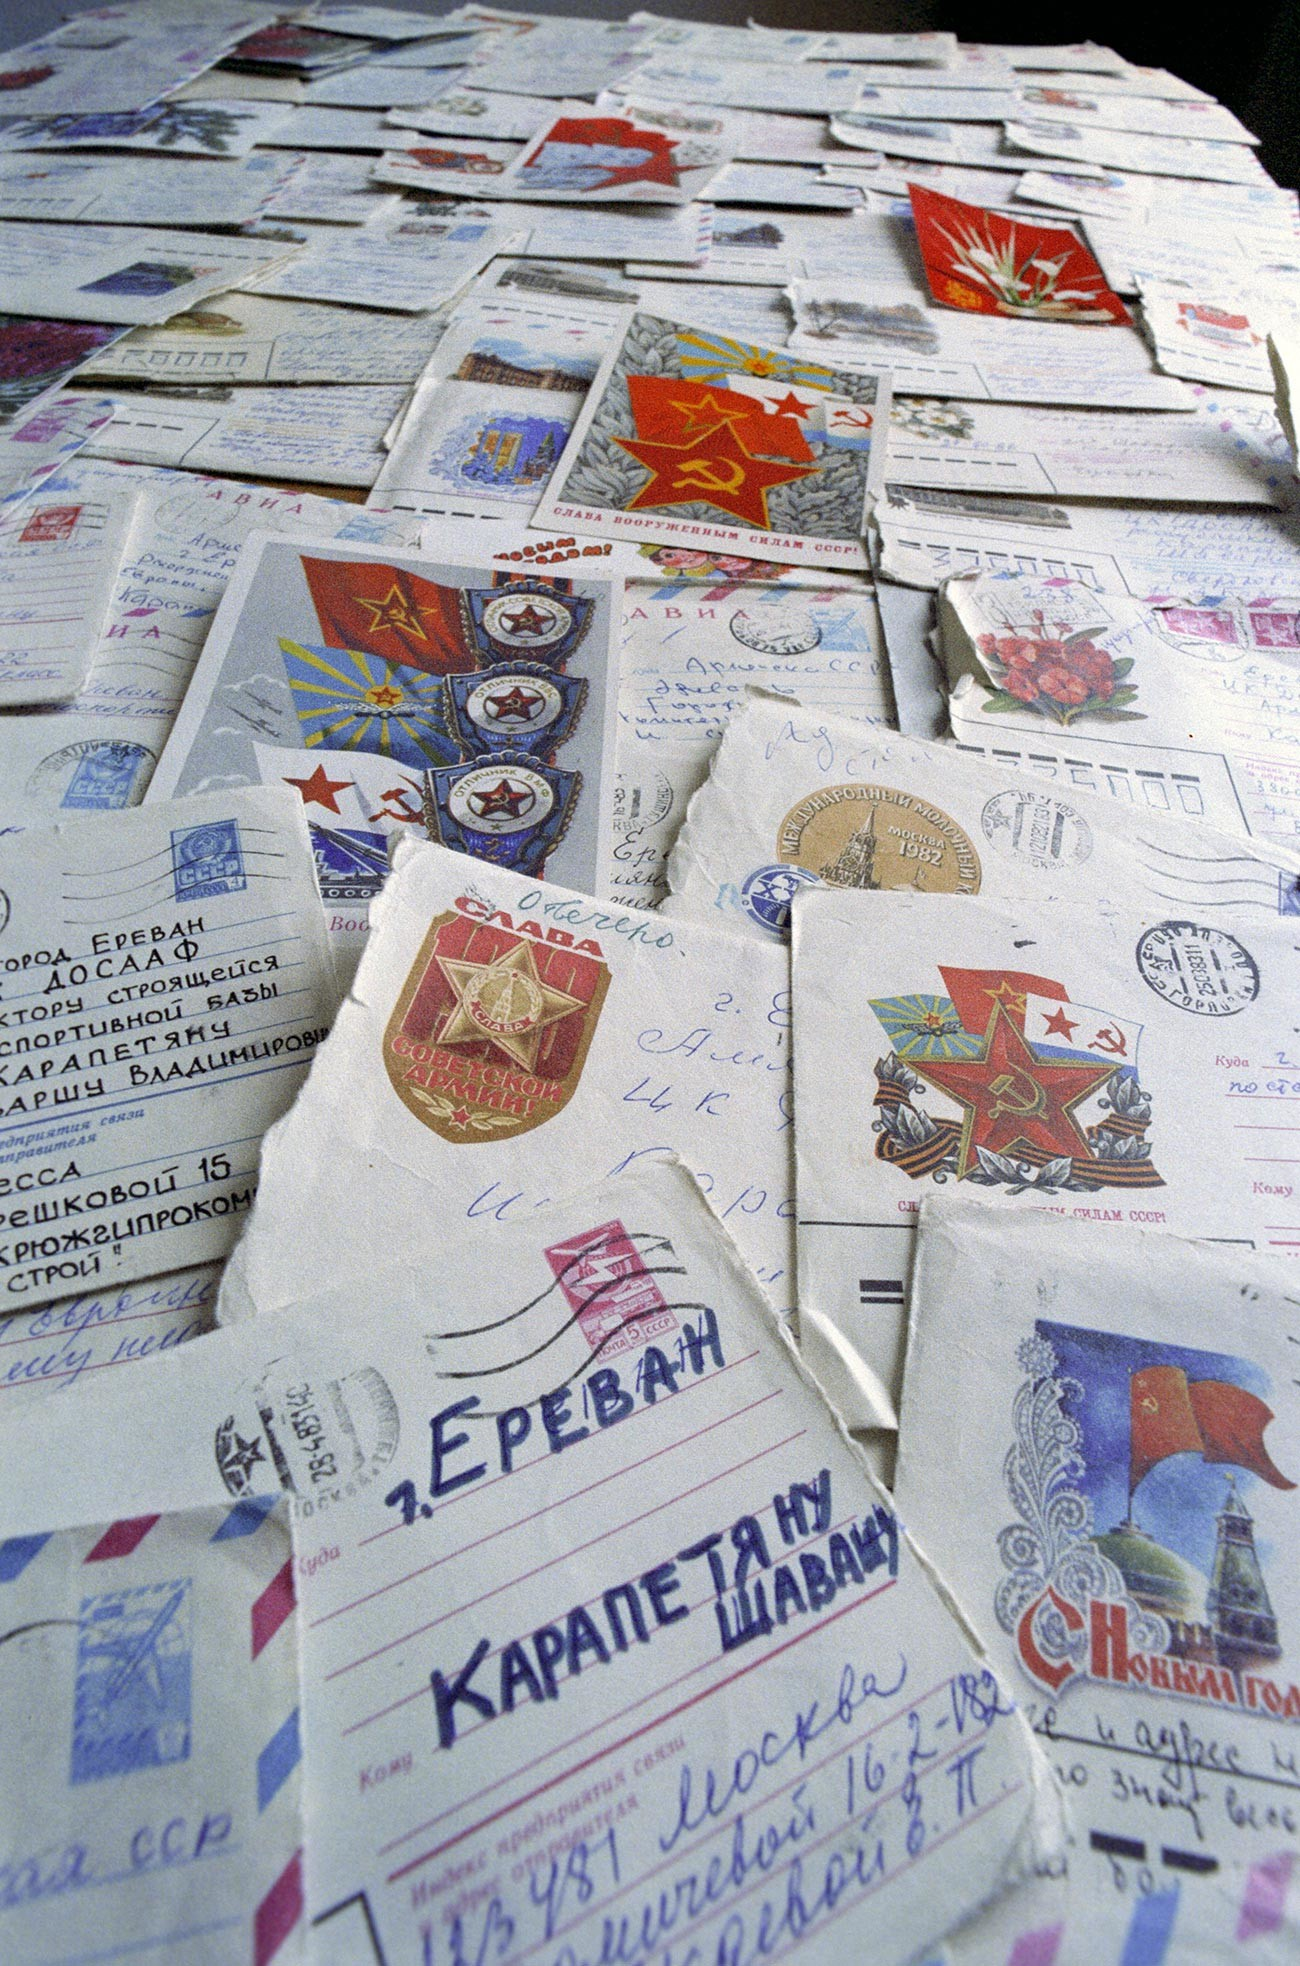 Letters from grateful people came to Shavarsh Karapetyan from all over the Soviet Union